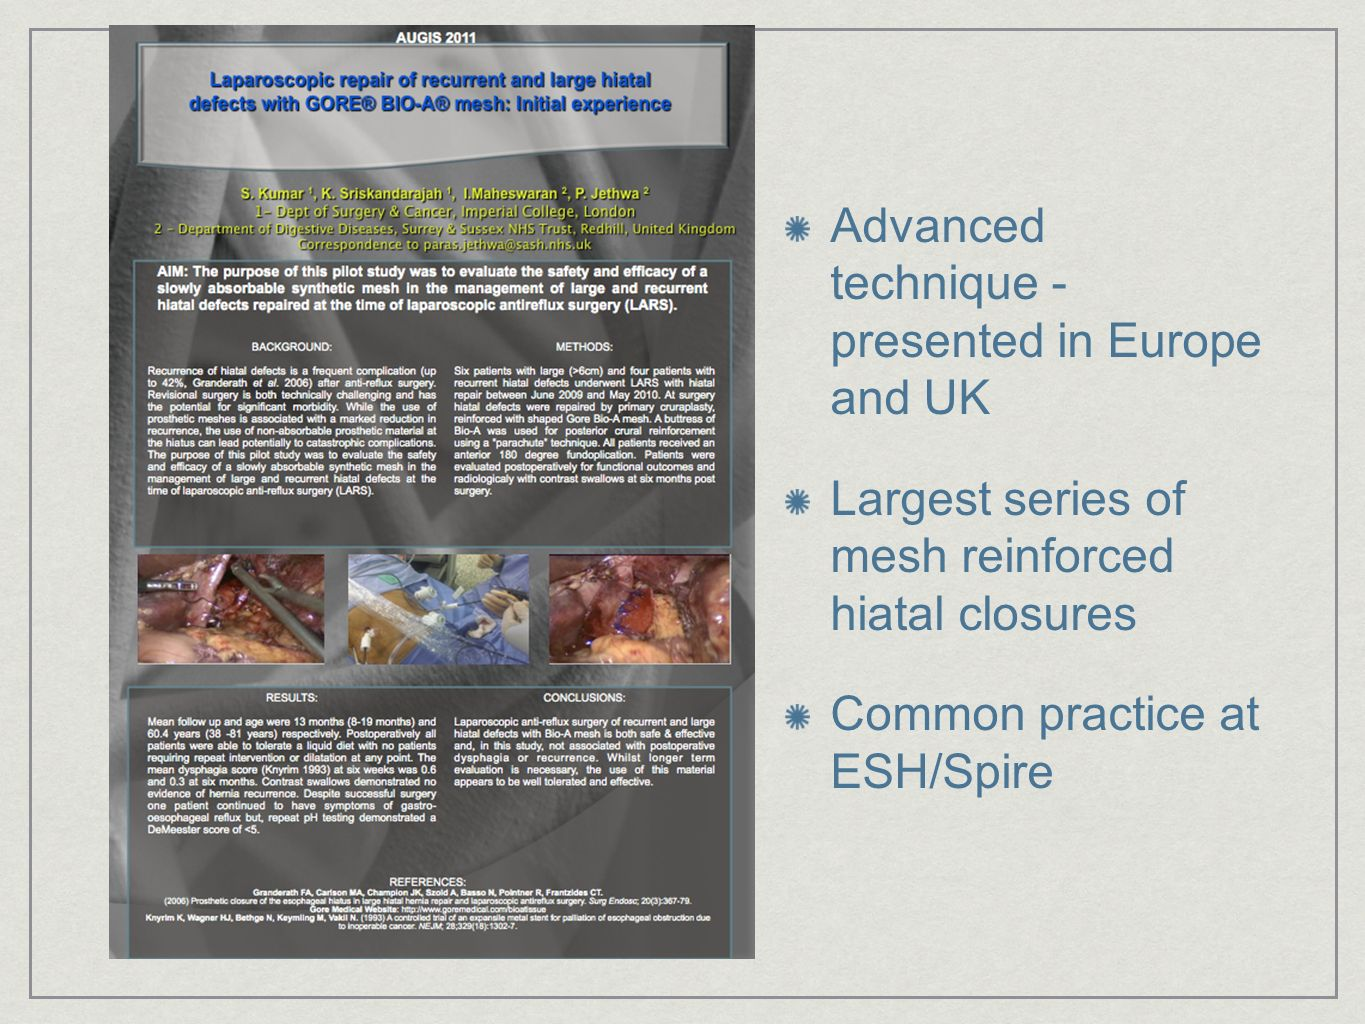 Advanced technique - presented in Europe and UK Largest series of mesh reinforced hiatal closures Common practice at ESH/Spire